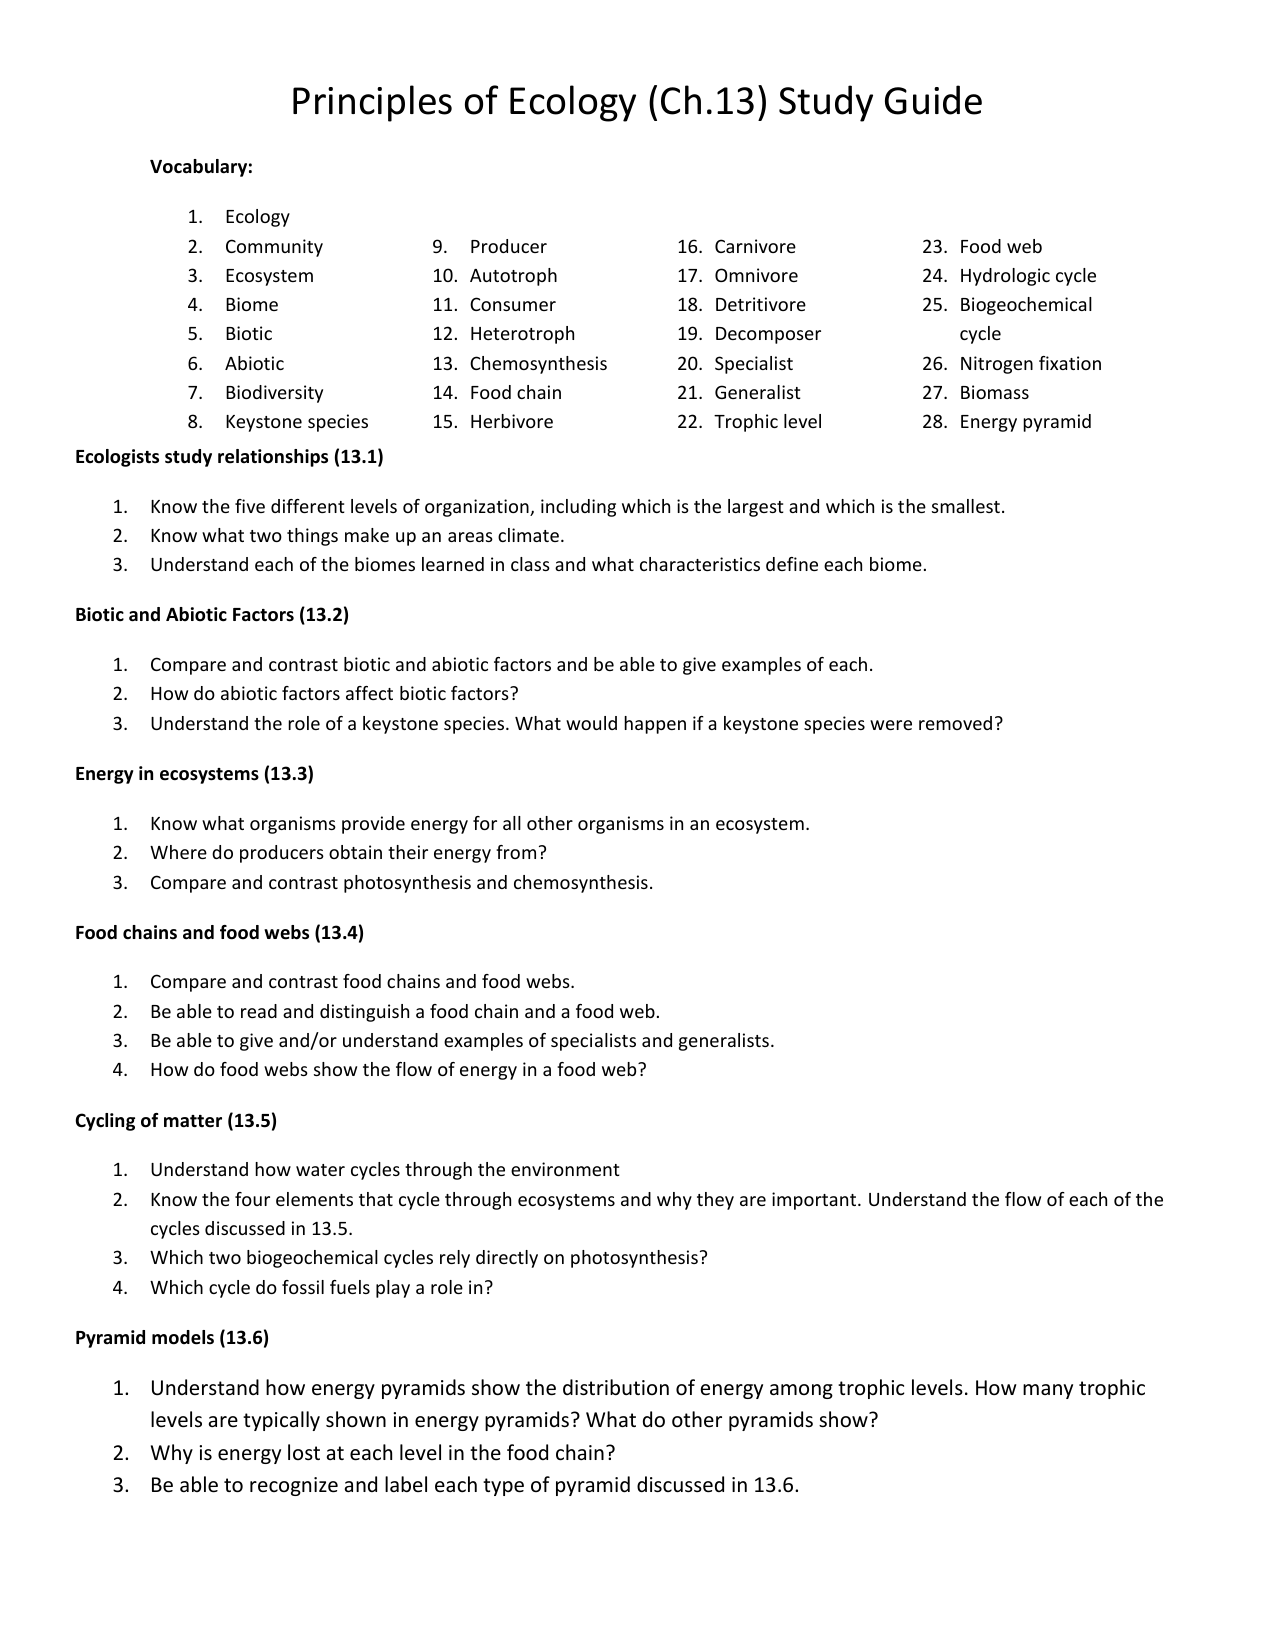 Principles of Ecology (Ch 13) Study Guide Vocabulary